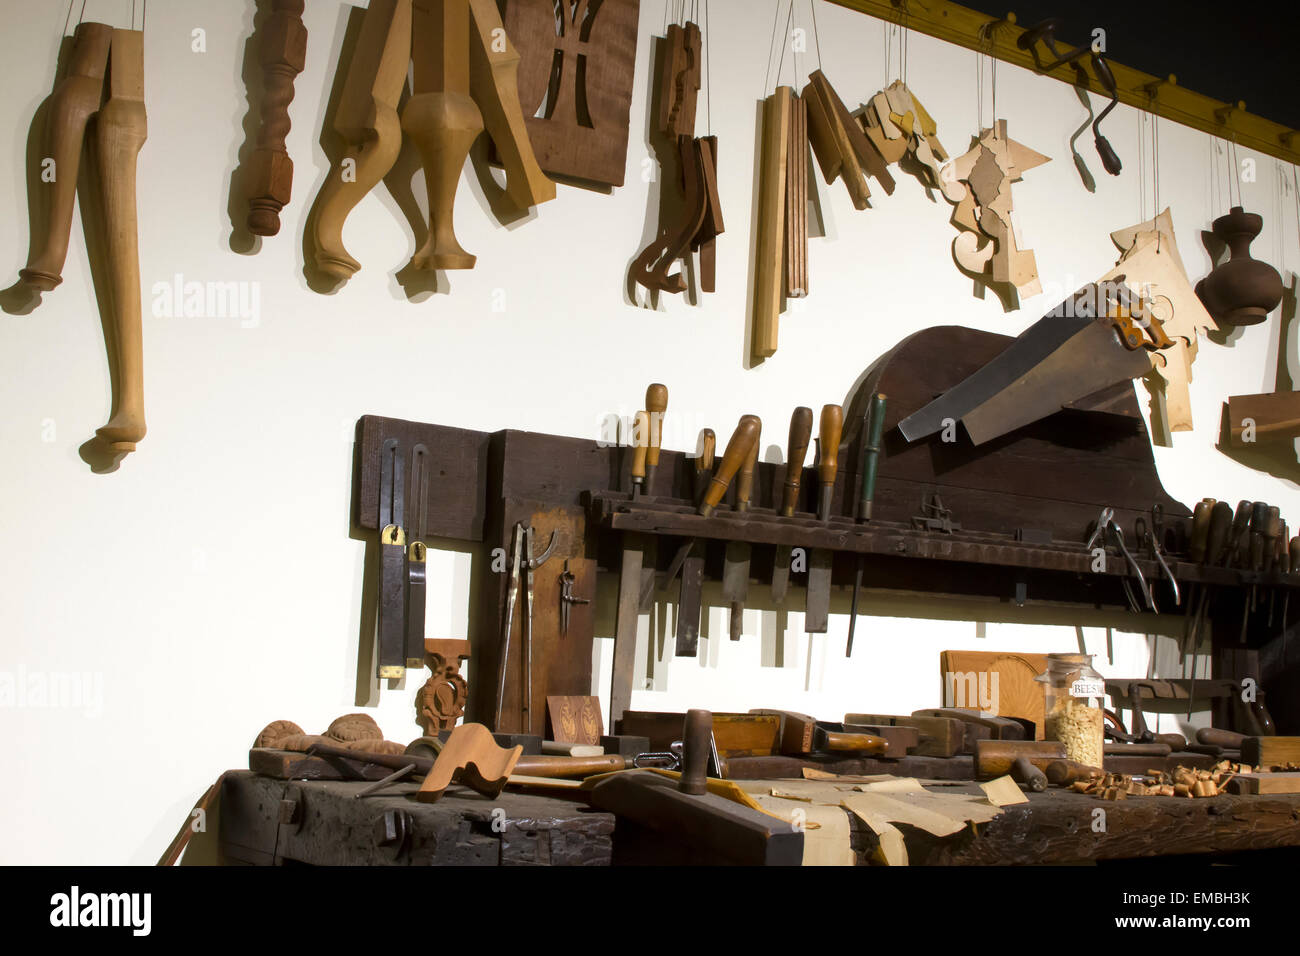 Workbench with clockmaker tools and components. - Stock Image